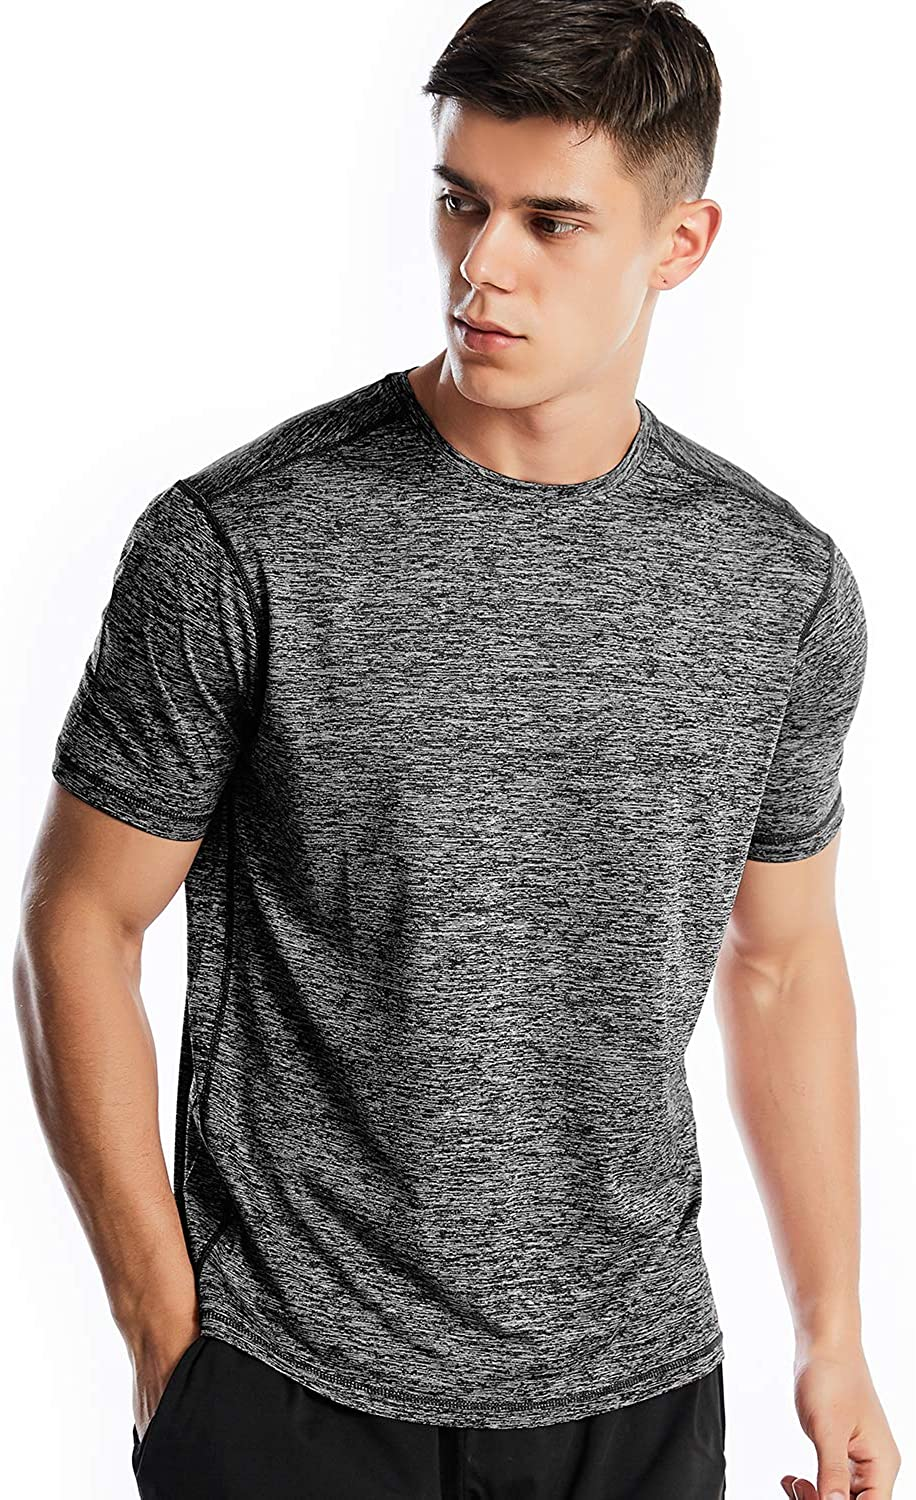 Athletic New life Shirts Popular overseas for Men Short Shirt Workout Sleeve